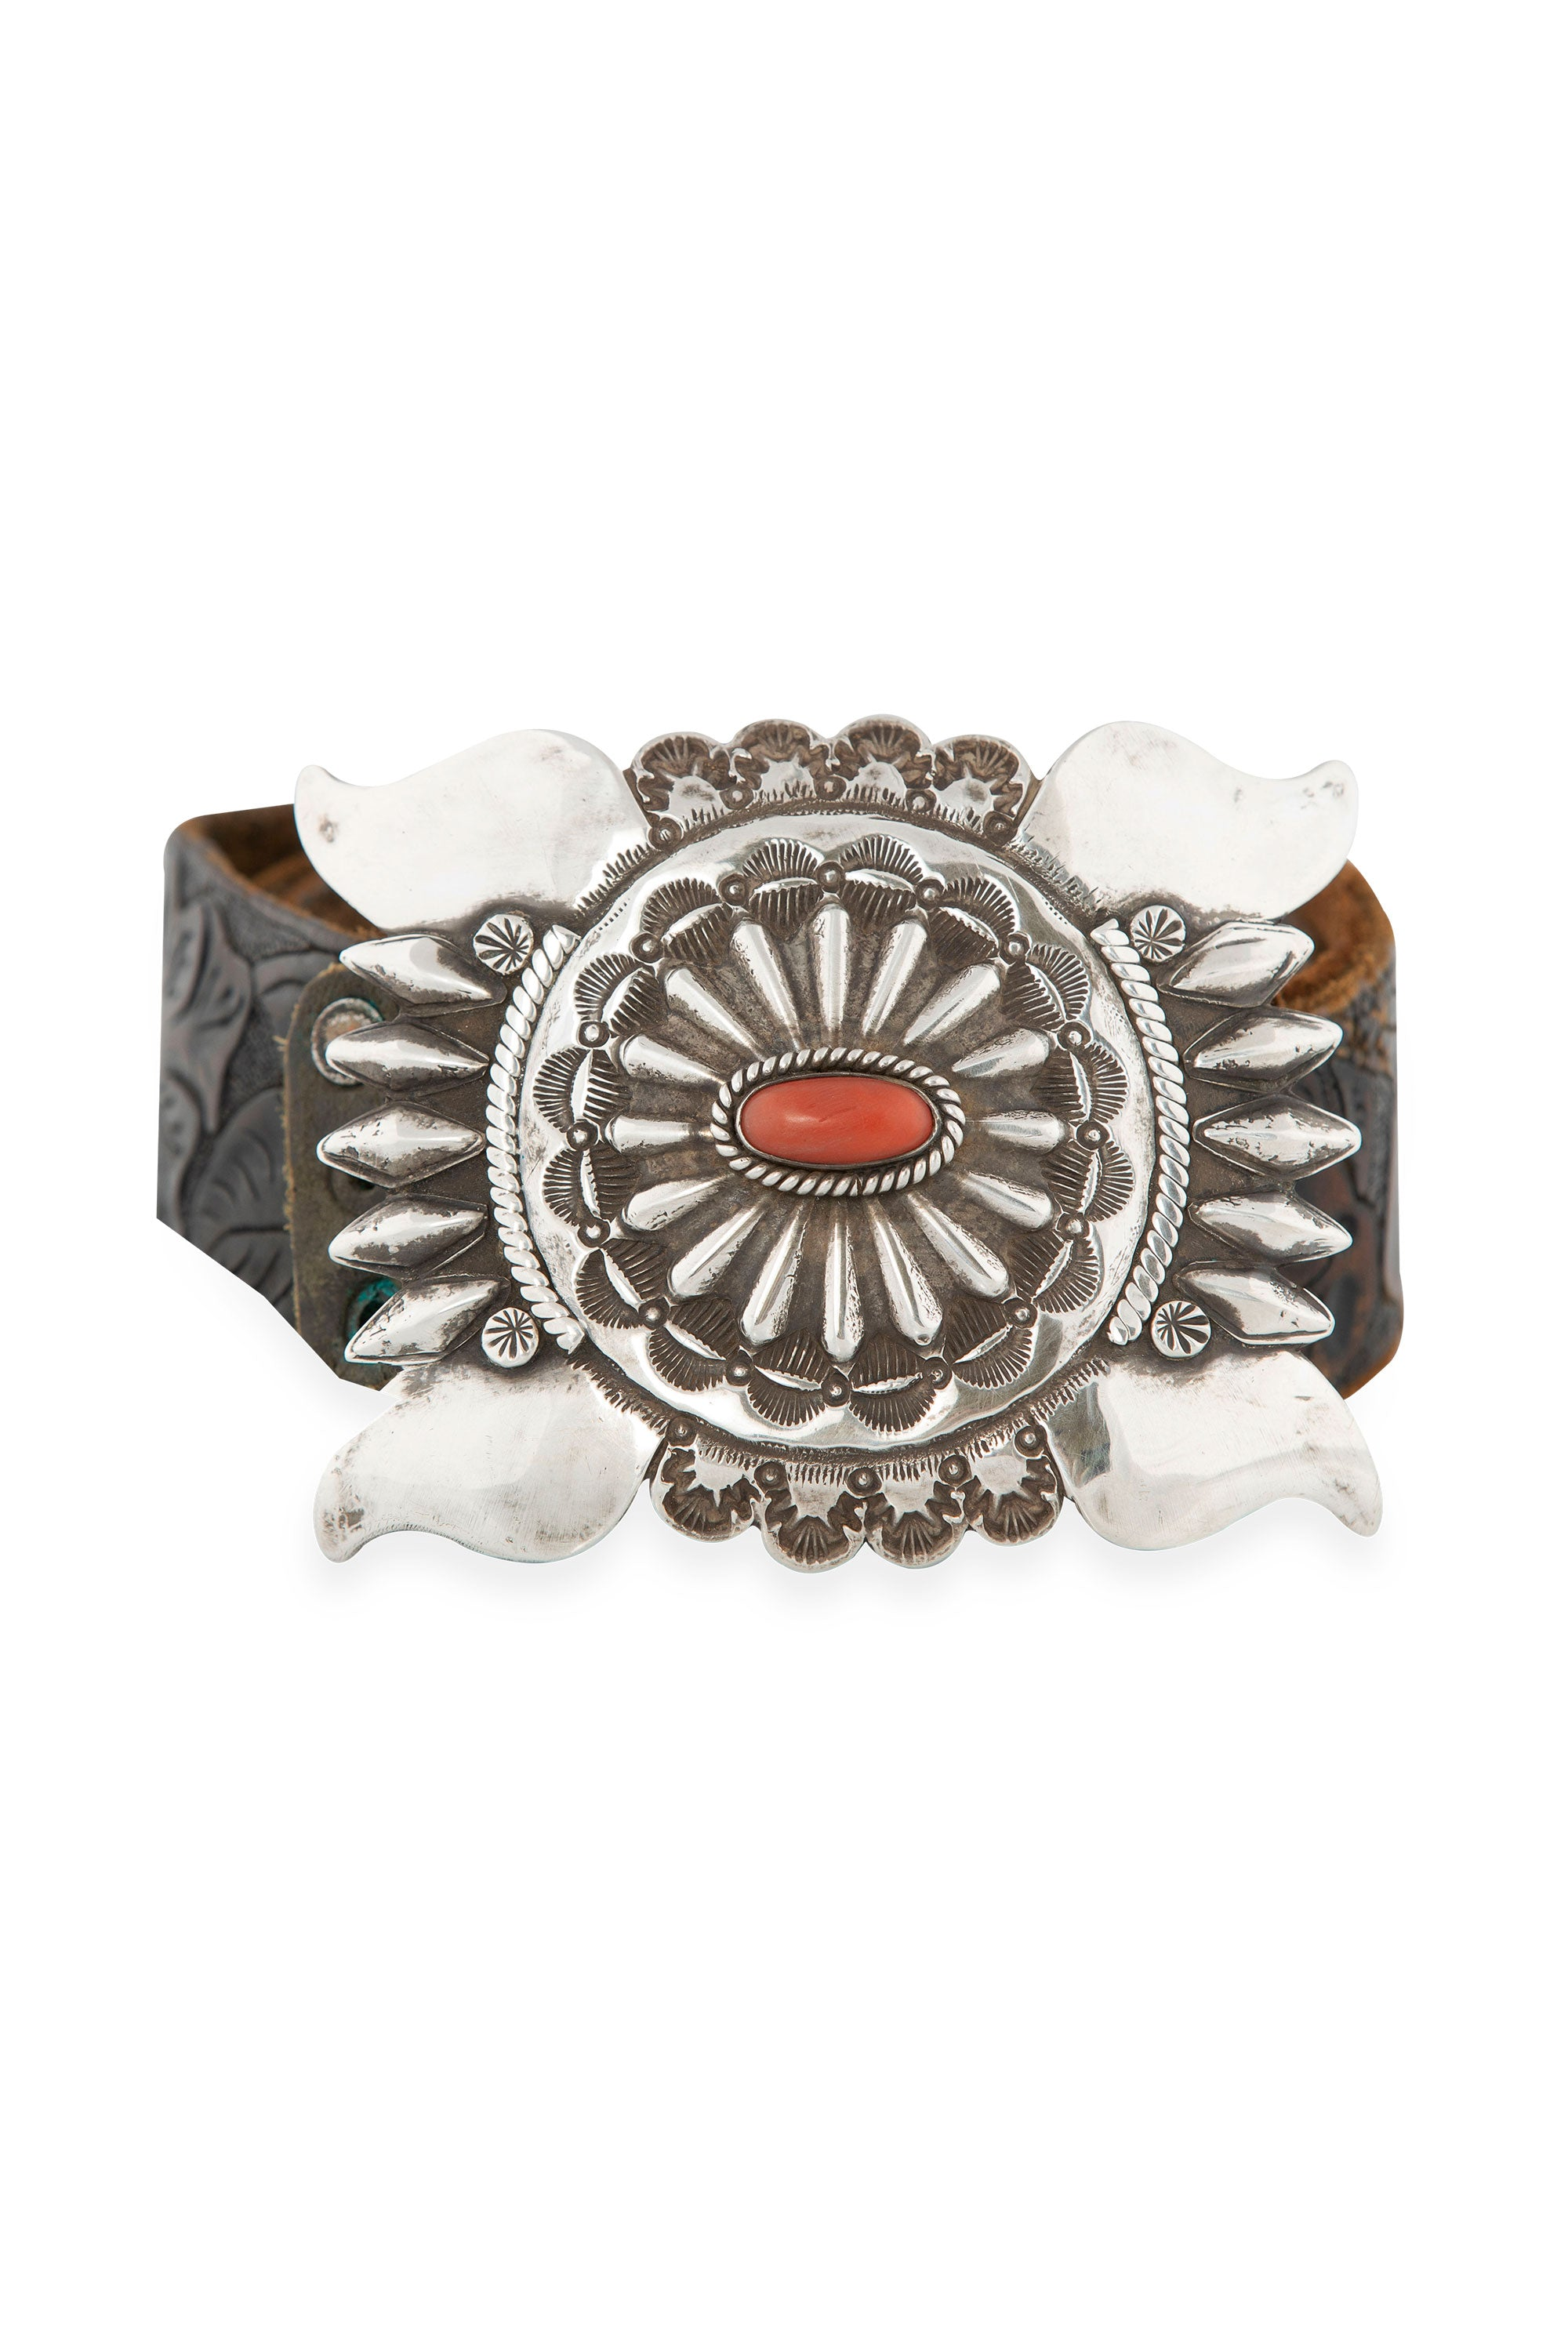 Belt, Buckle, Coral, Sterling Silver, Western Tooled Leather Strap, Vintage, 679